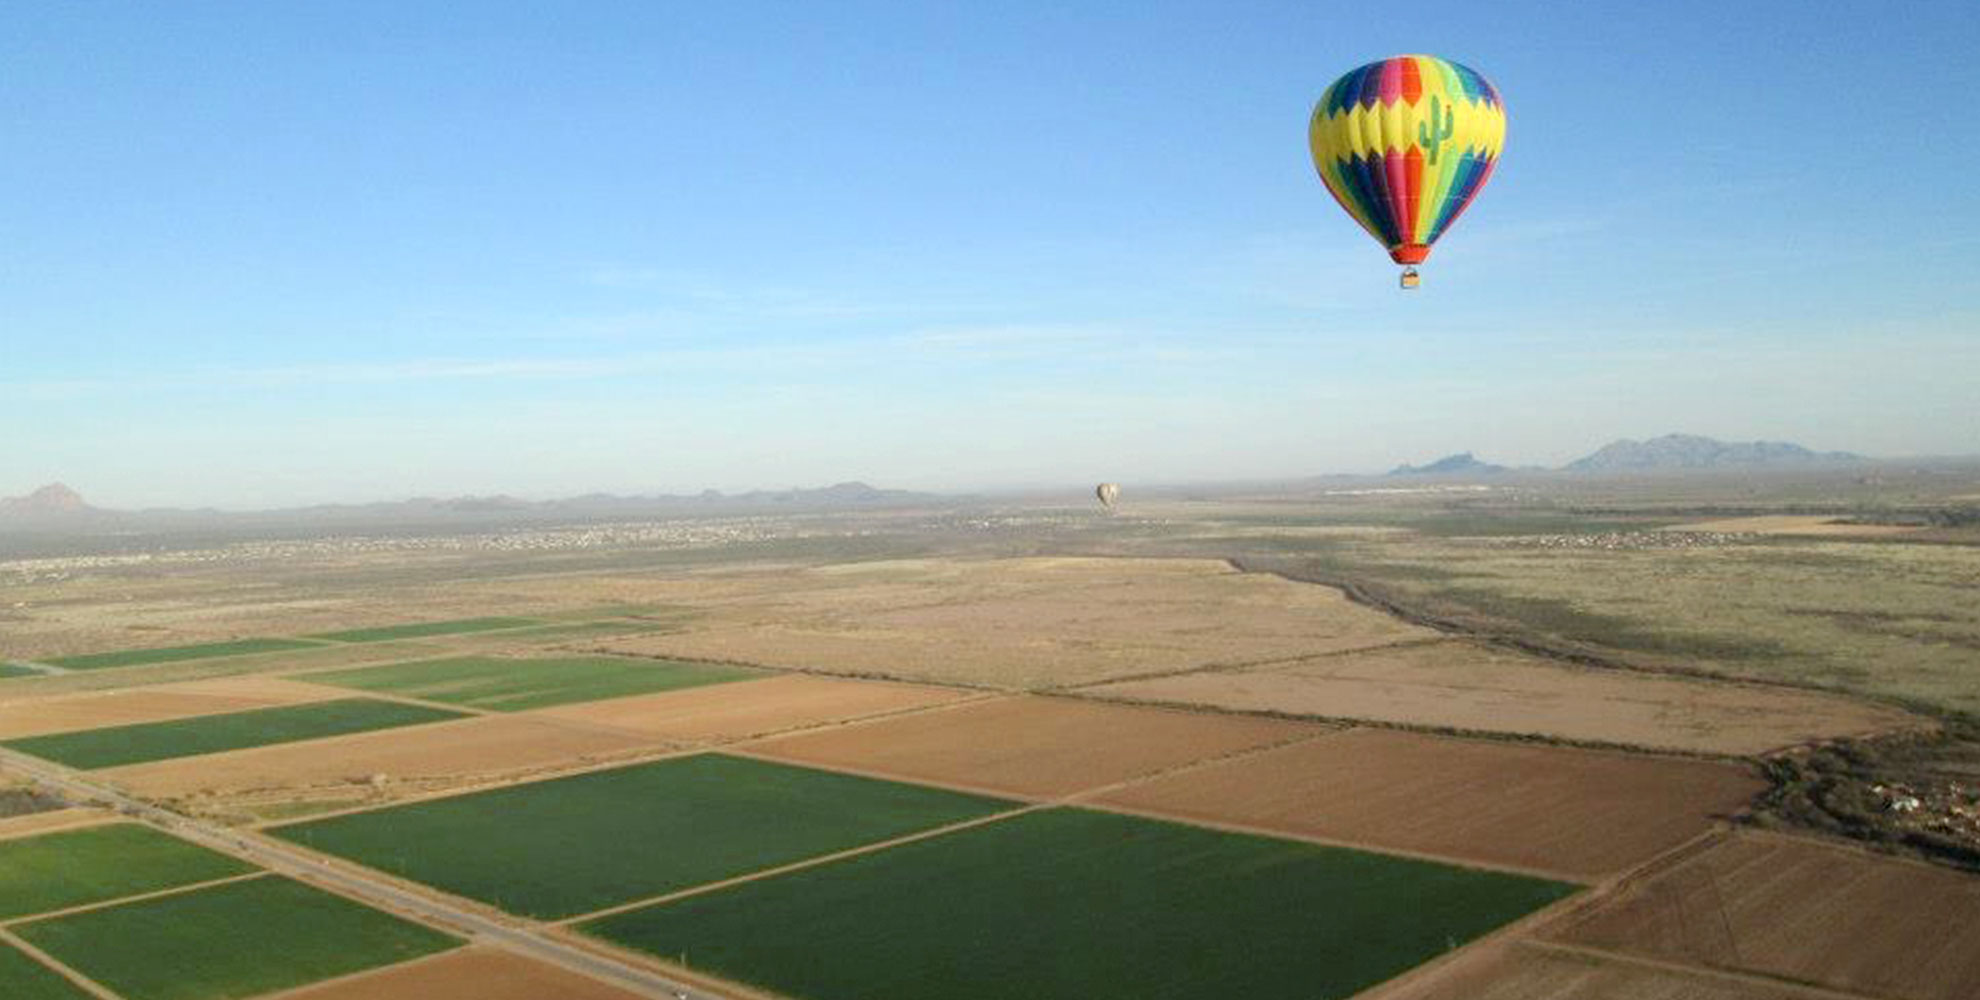 Two Hot Air Balloons Flying Over a Beautiful Landscape